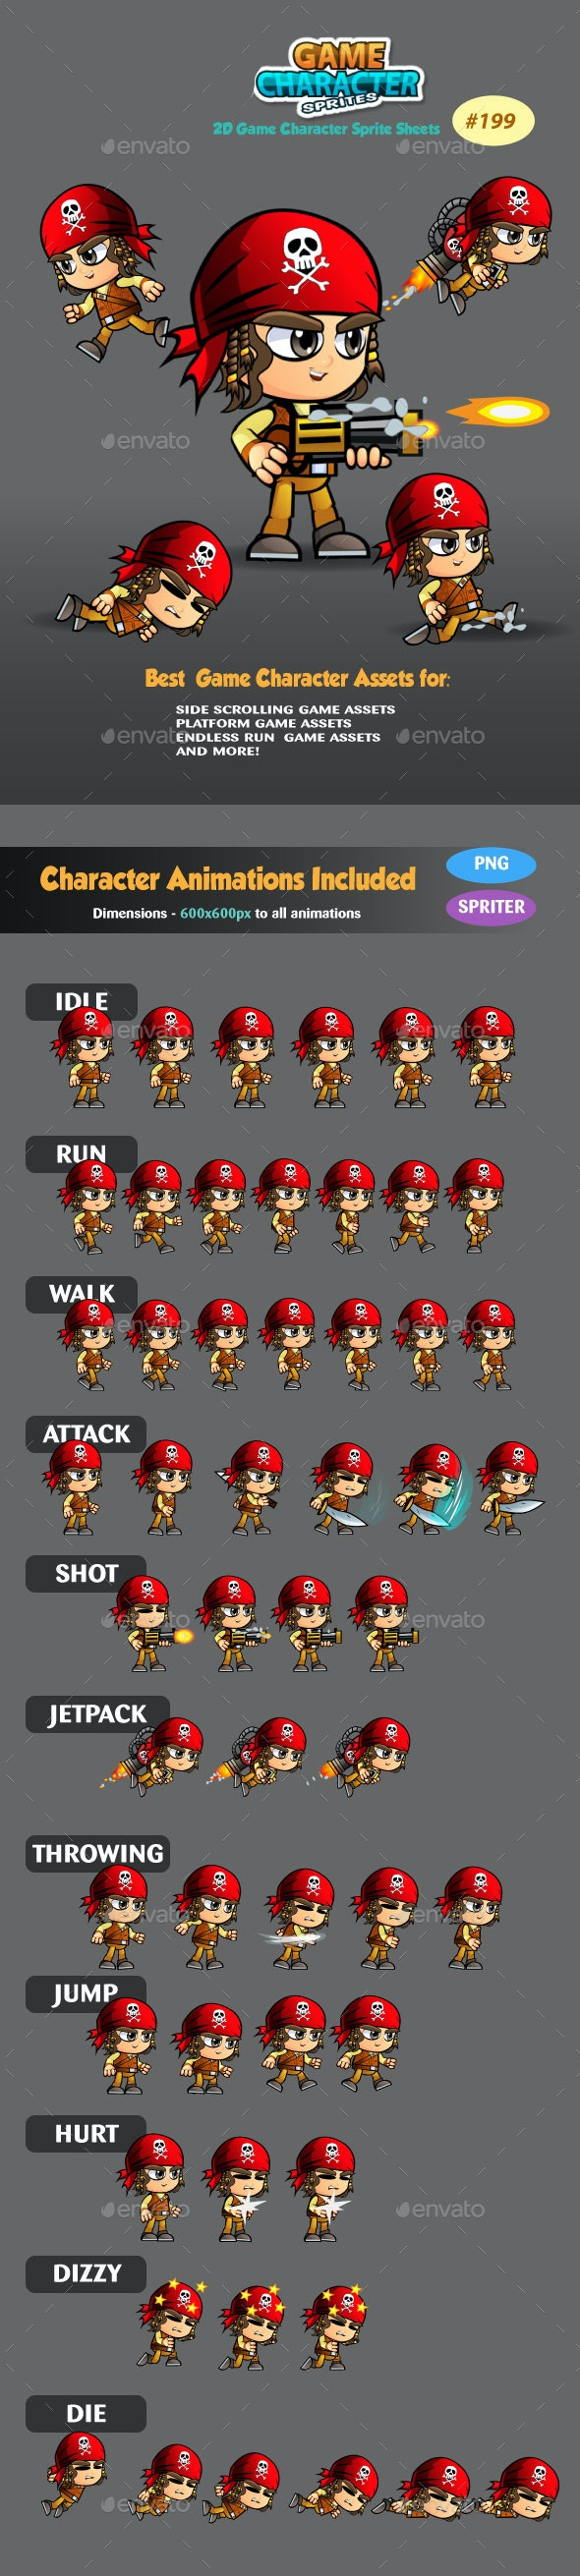 Pirate Boy 2D Game Character Sprites 199 - Sprites Game Assets